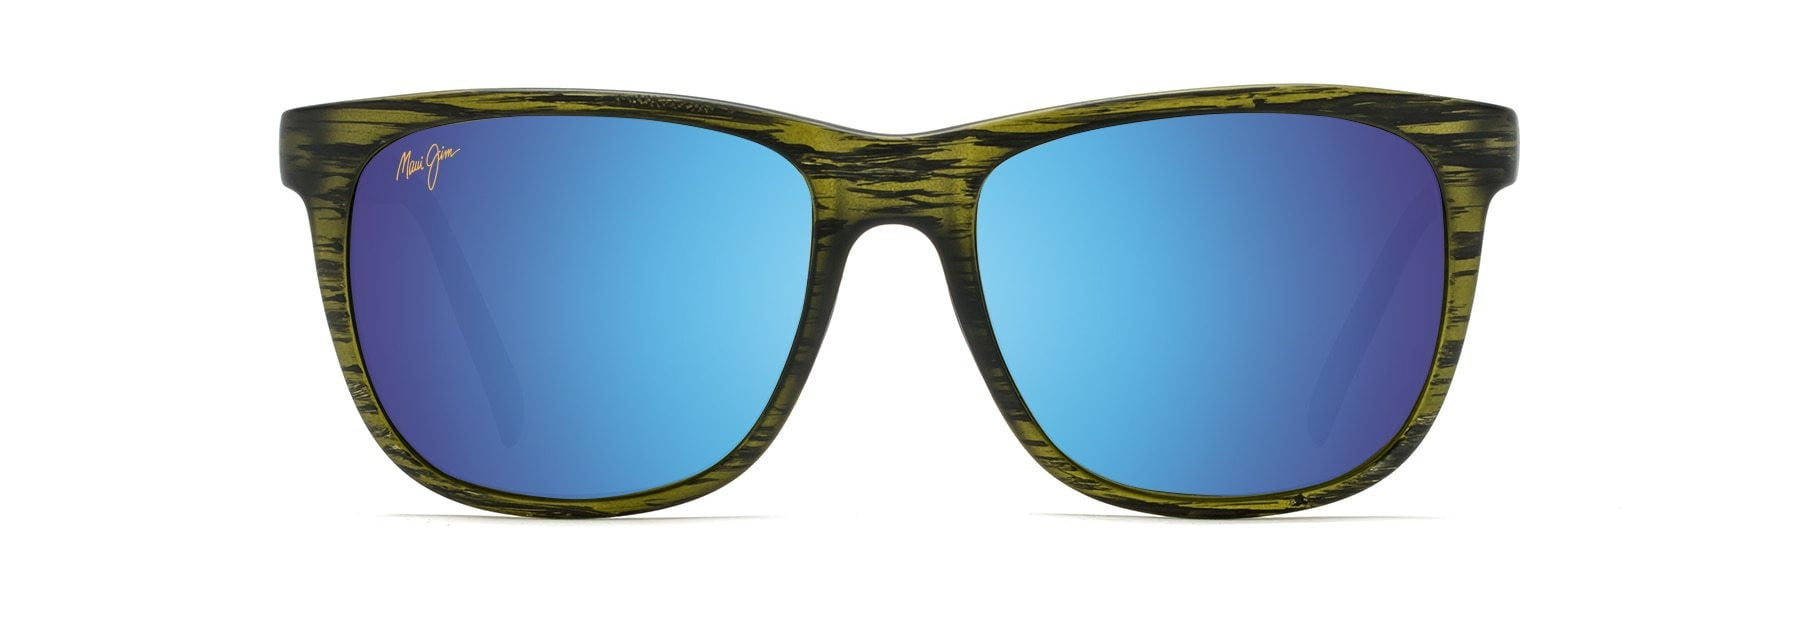 MyMaui Tail Slide MM740-038 Sunglasses